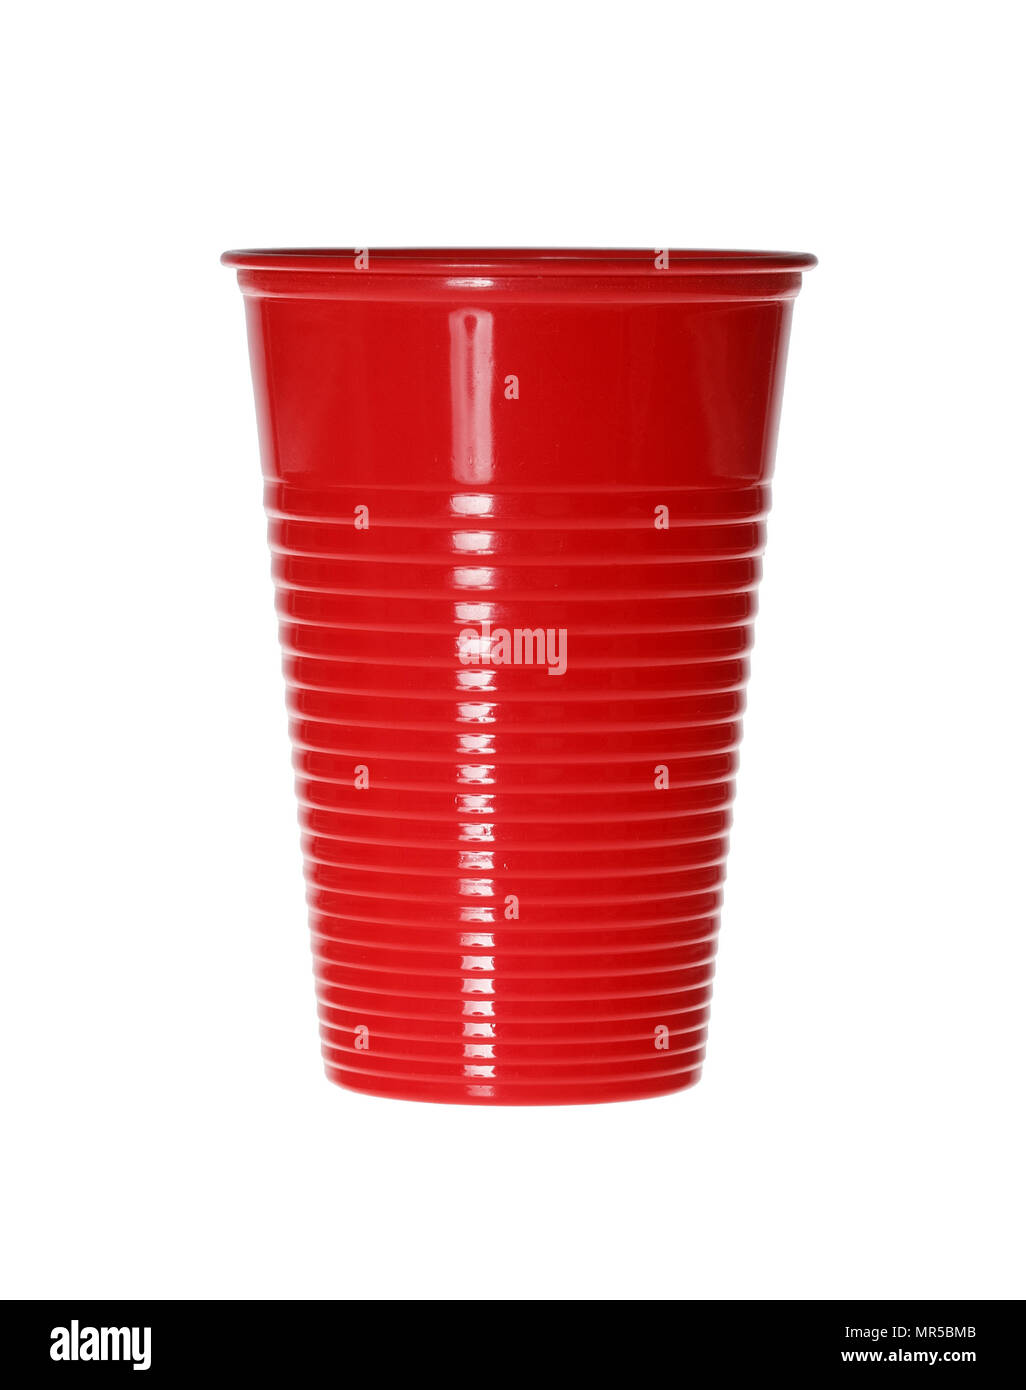 Red Plastic Cup isolated on white. - Stock Image